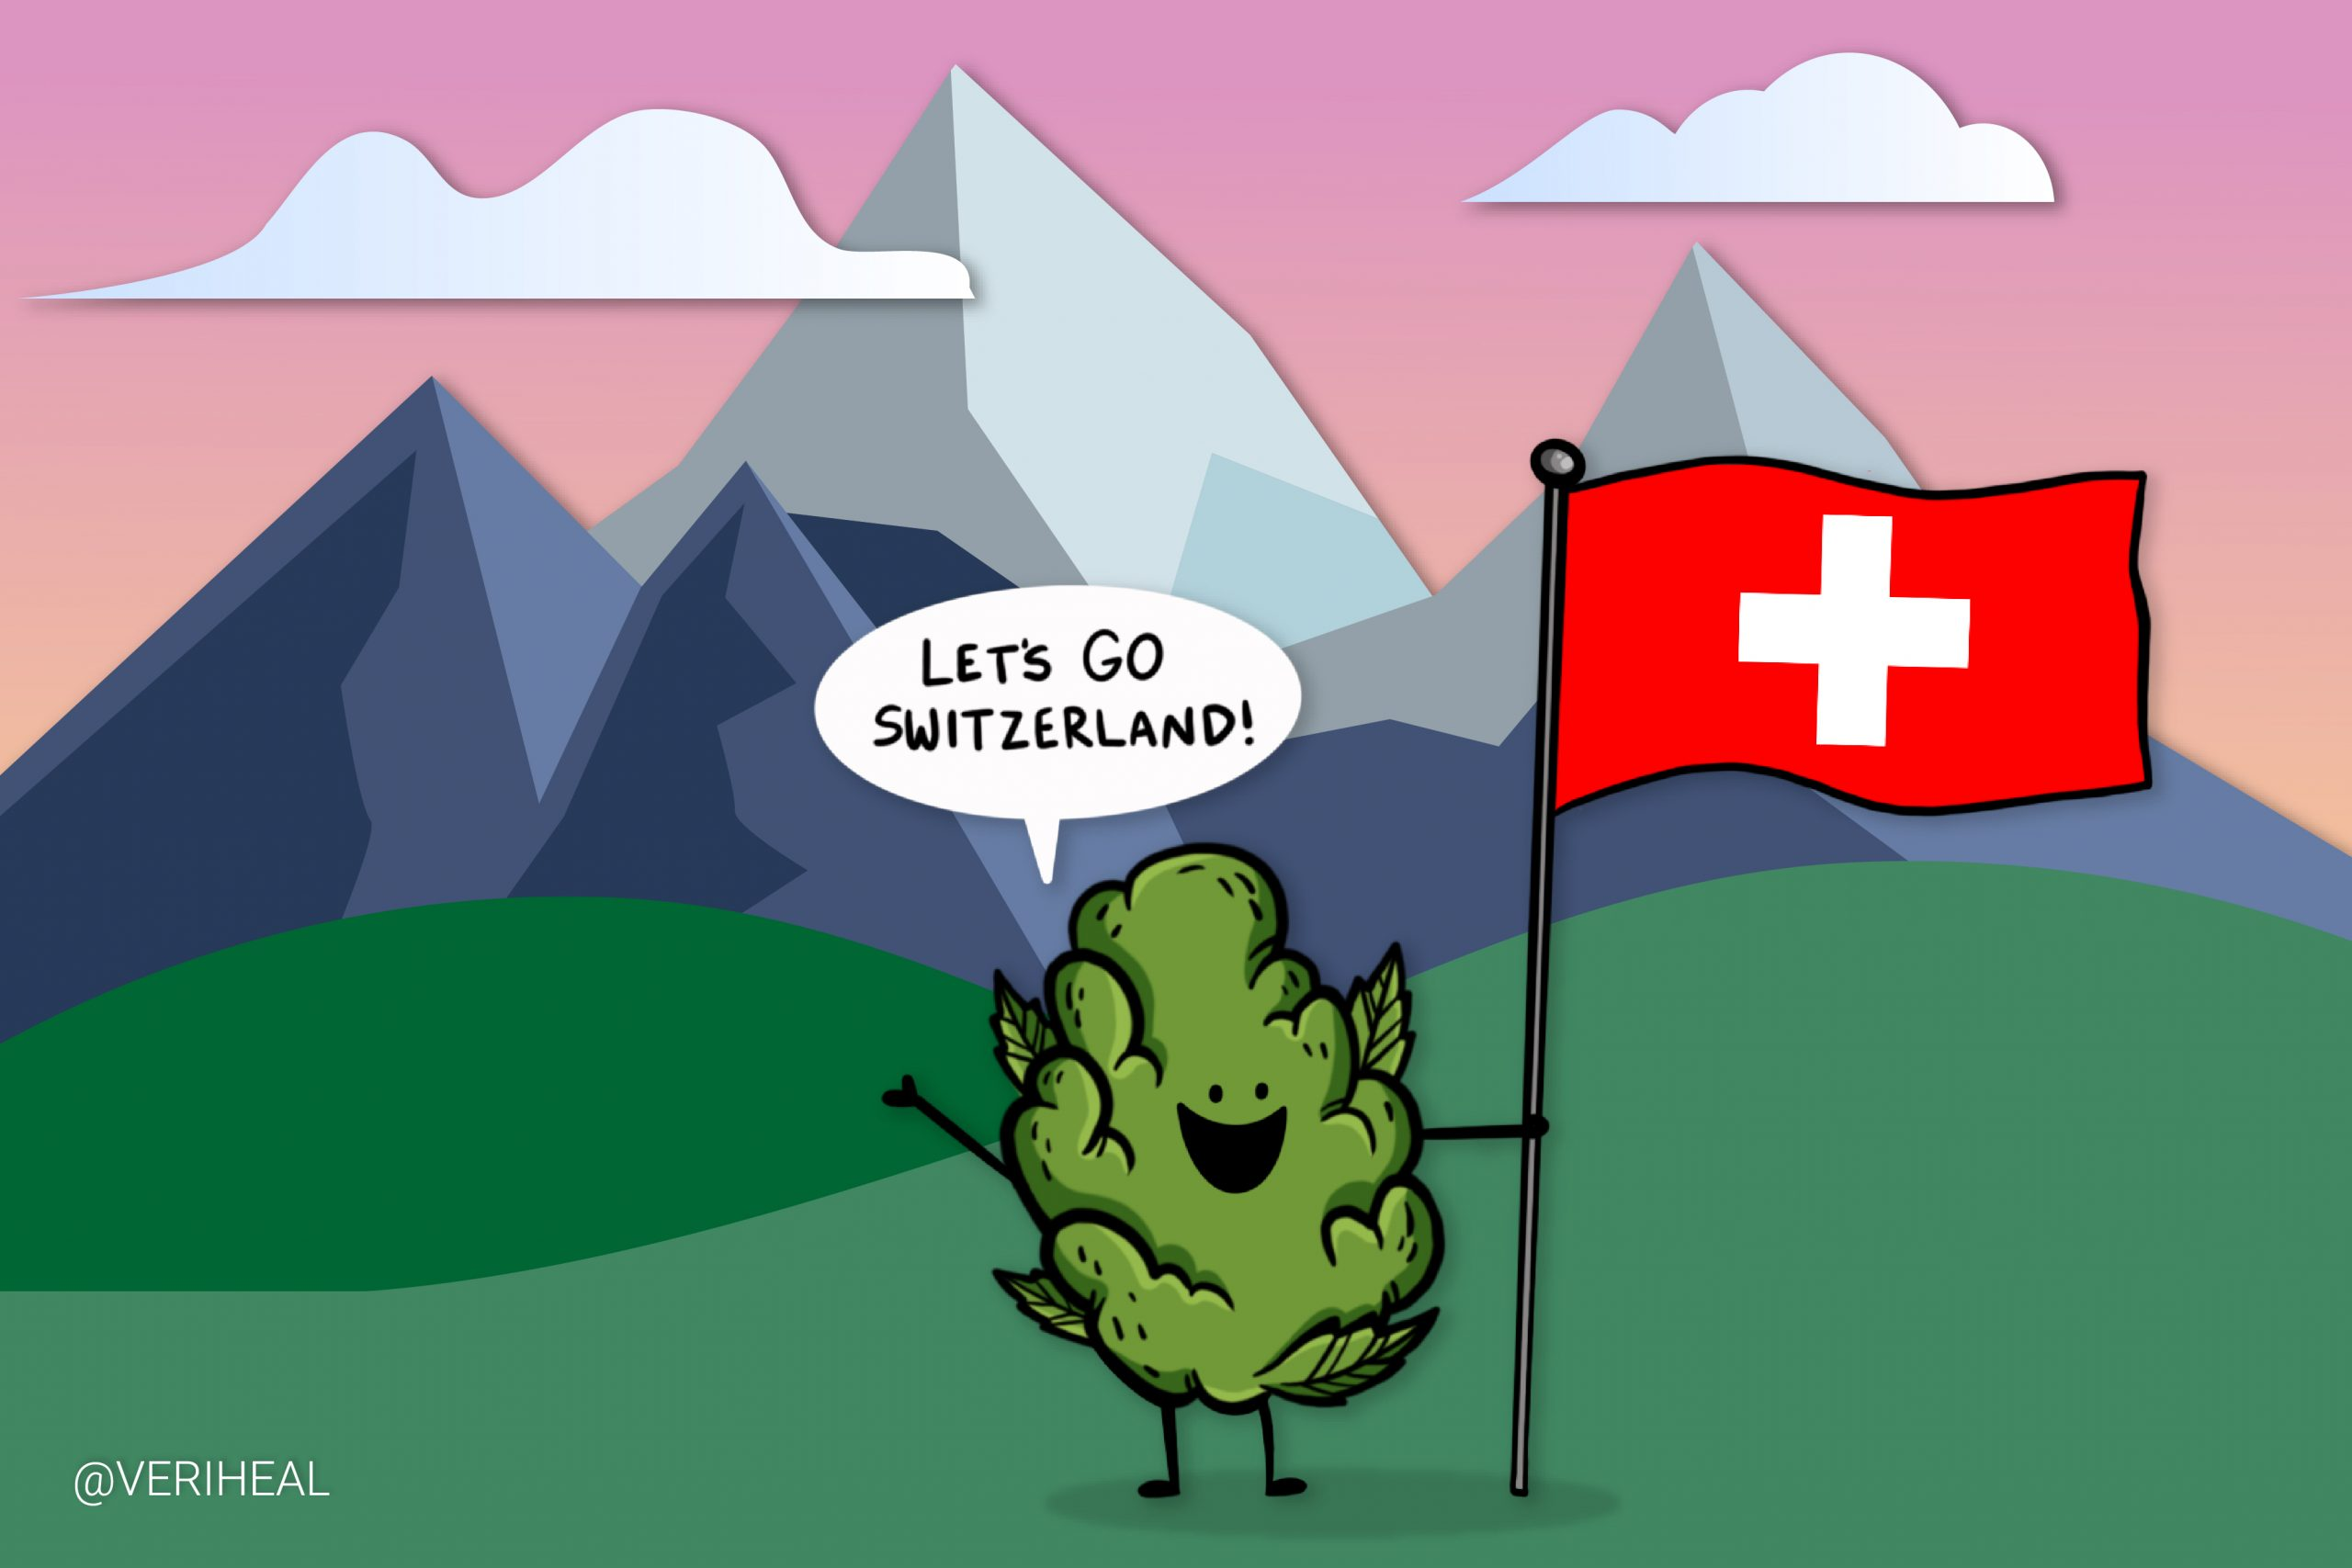 Switzerland Makes Way for Easier Access to Medical Cannabis